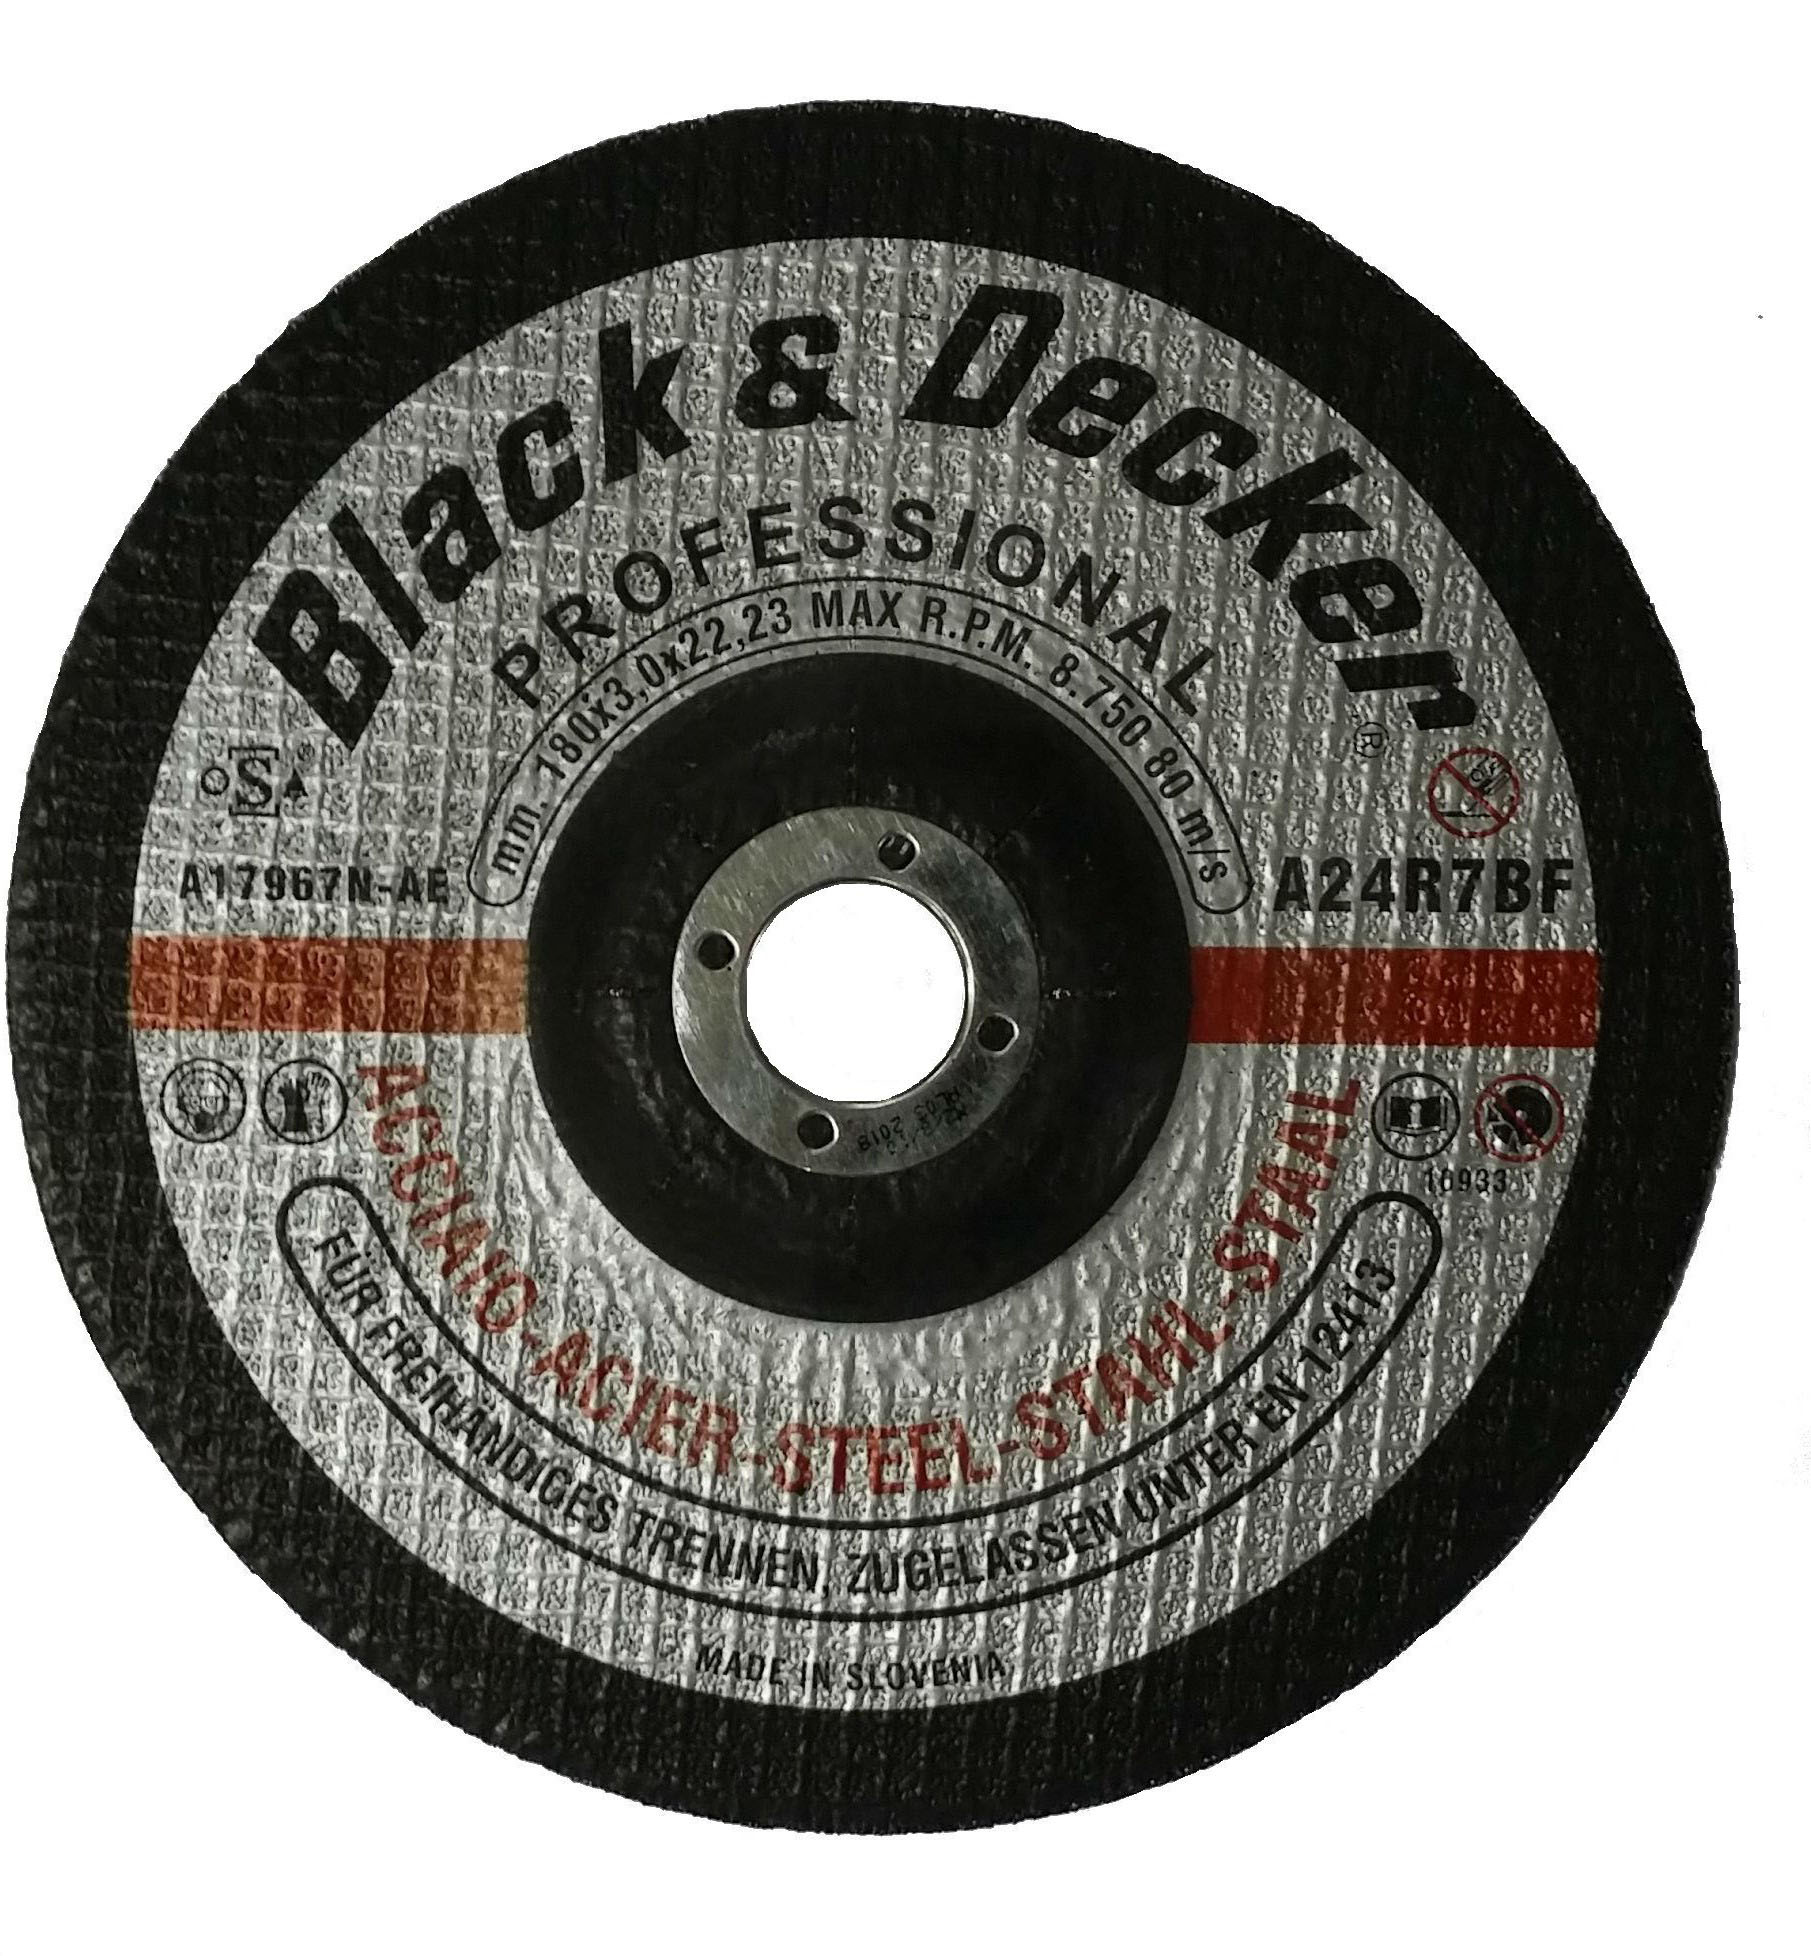 Black & Decker A17987N-AE - 9in Metal Cutting Disc